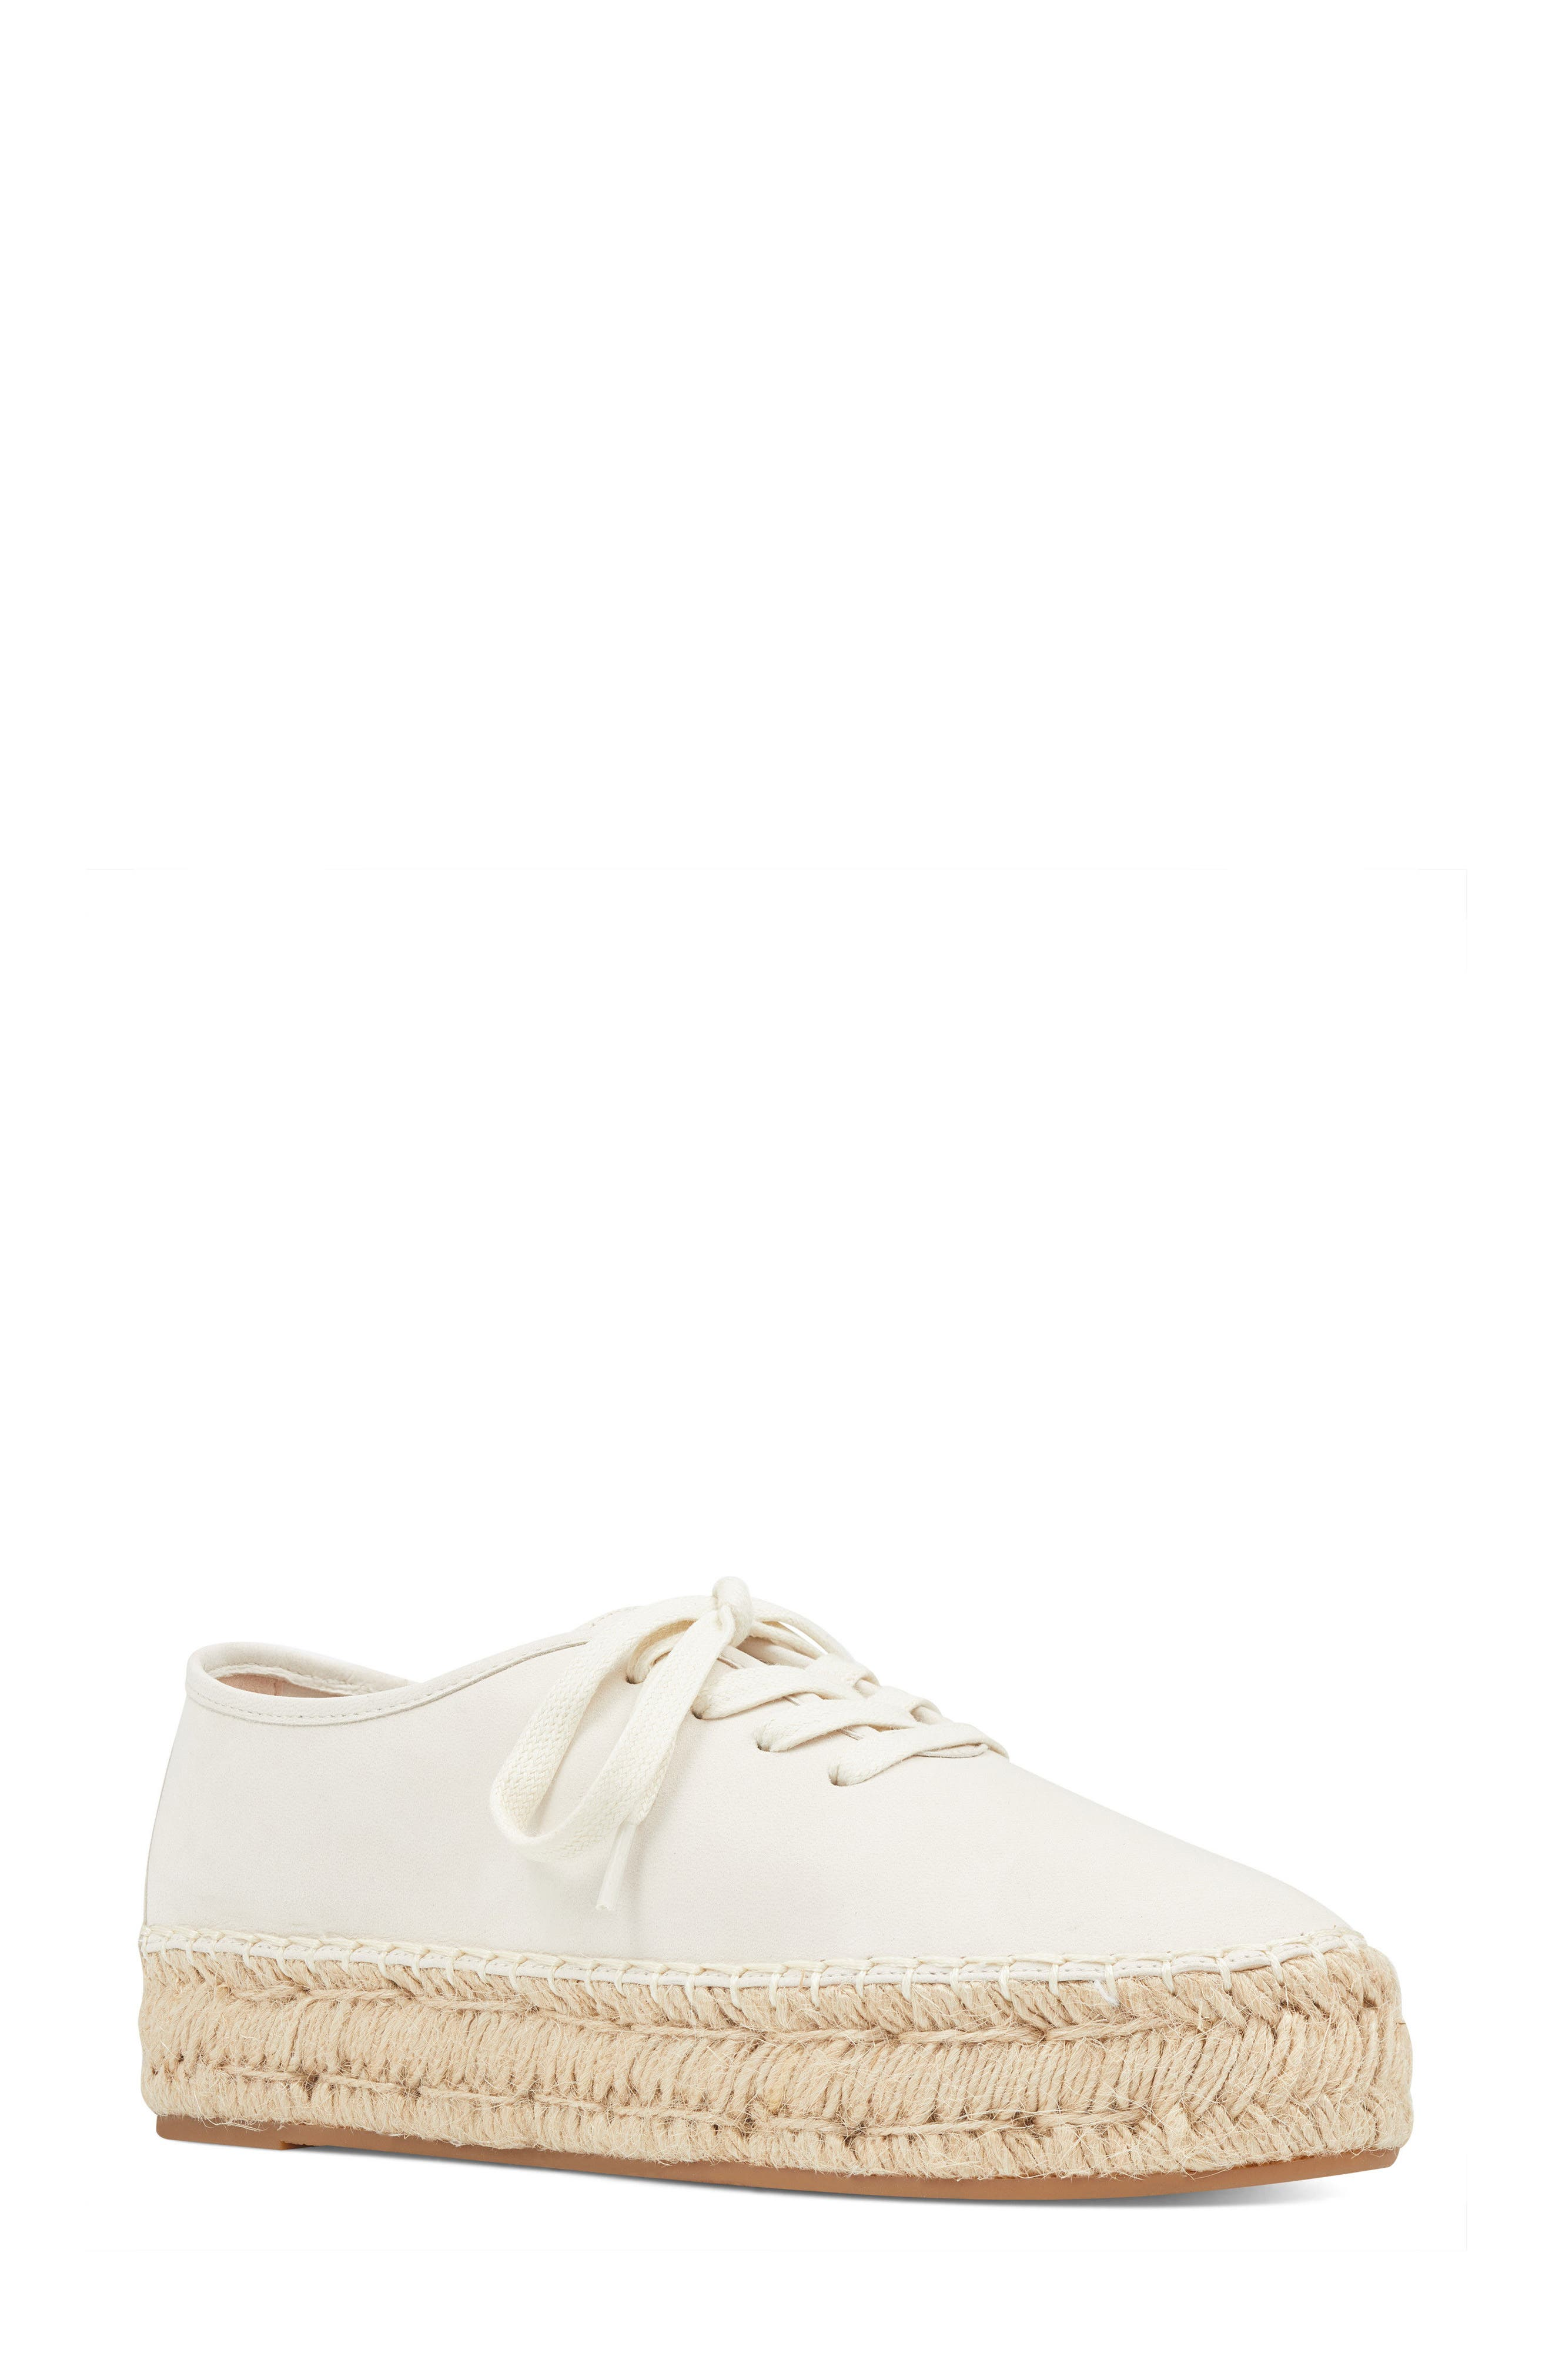 Gingerbread Espadrille Sneaker,                         Main,                         color, OFF WHITE LEATHER